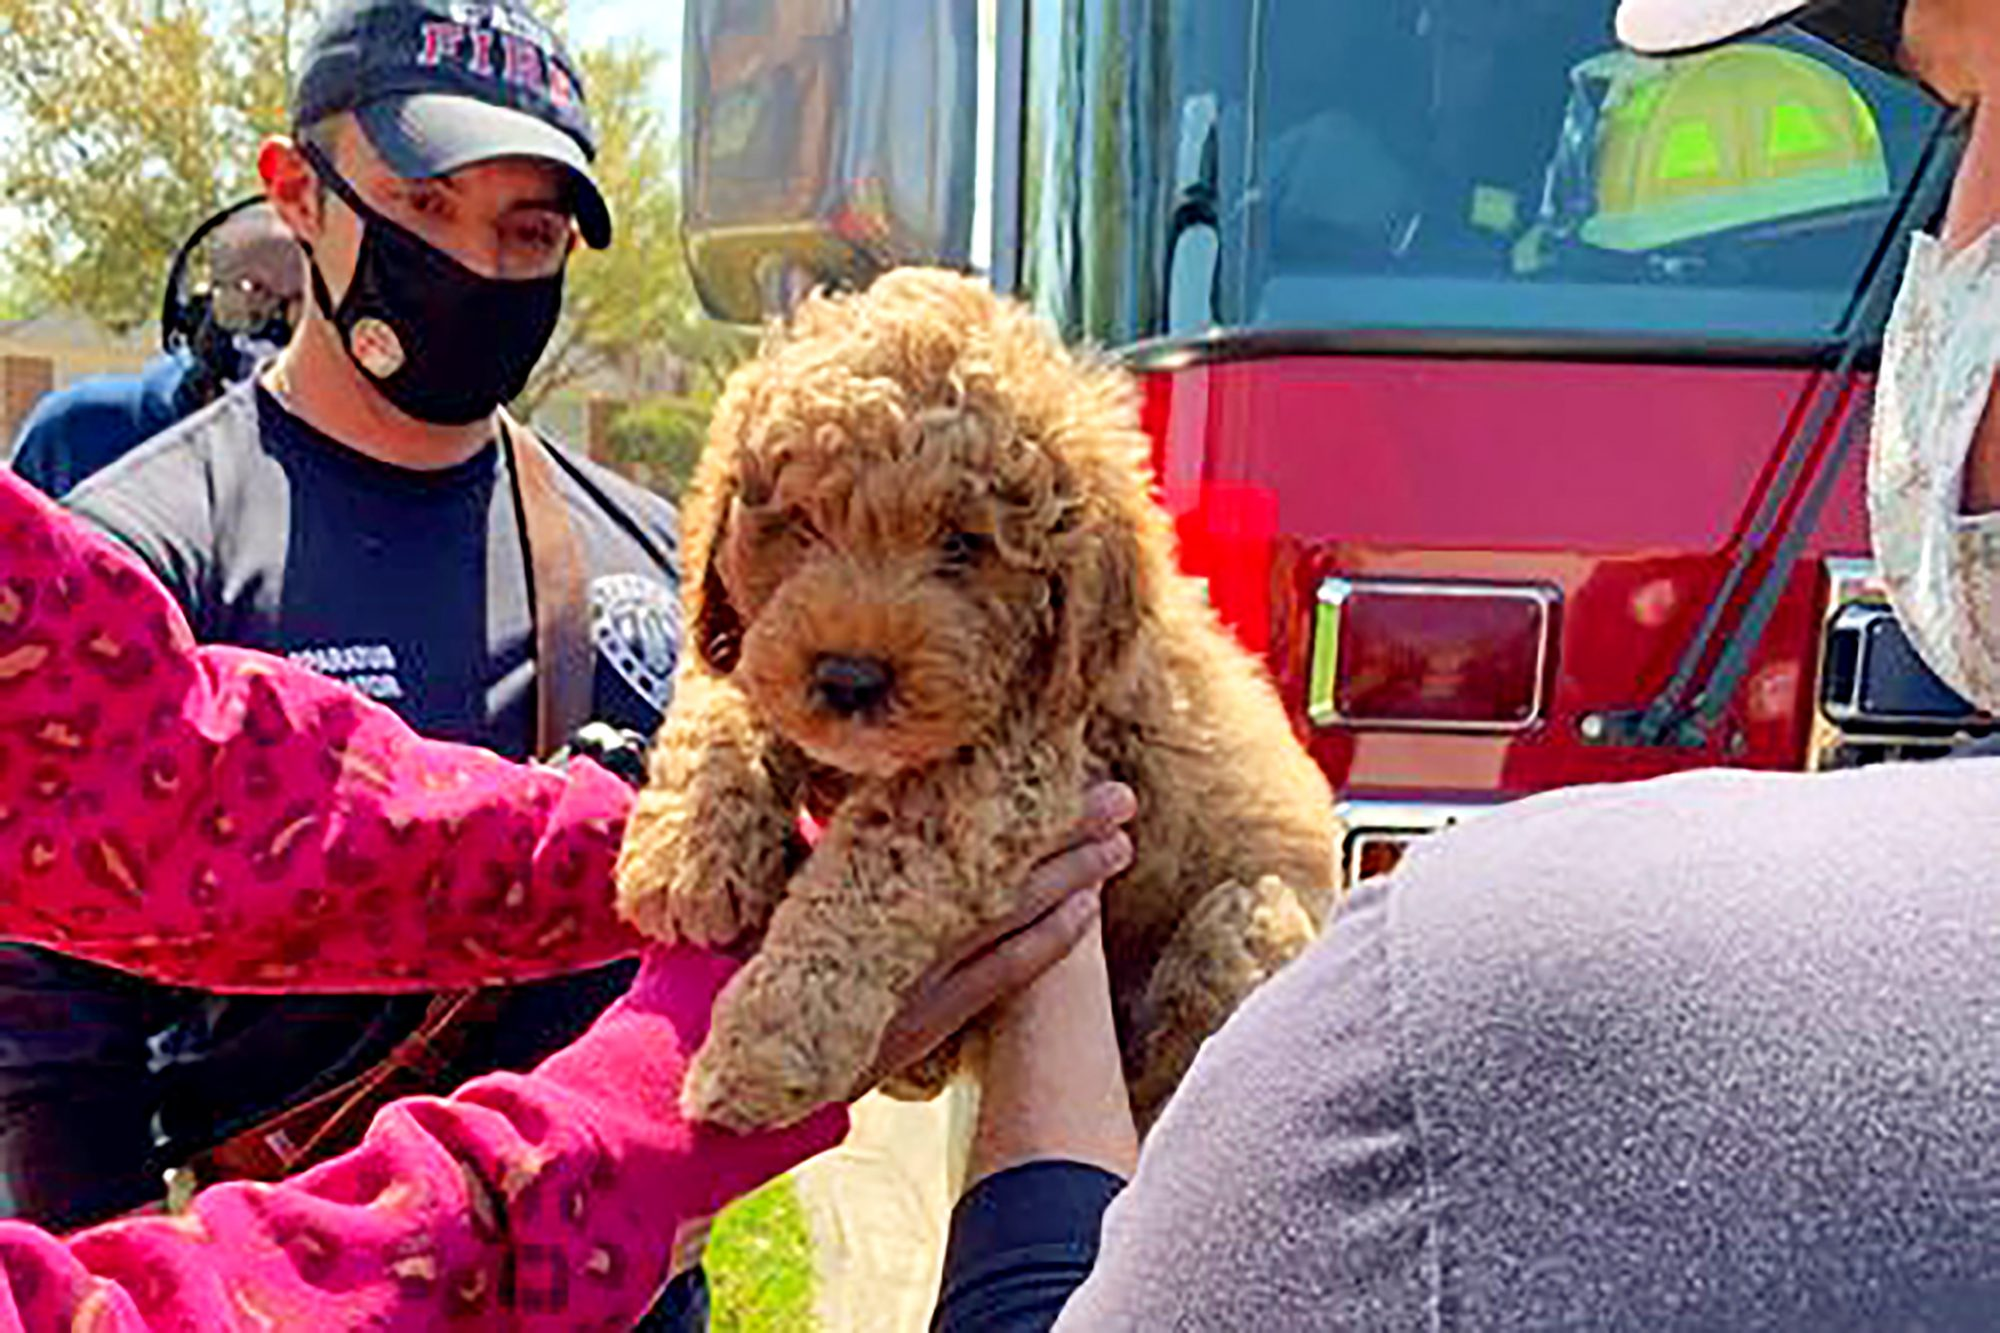 Golden doodle puppy embraced by owner's outstretched hands after rescued by firemen